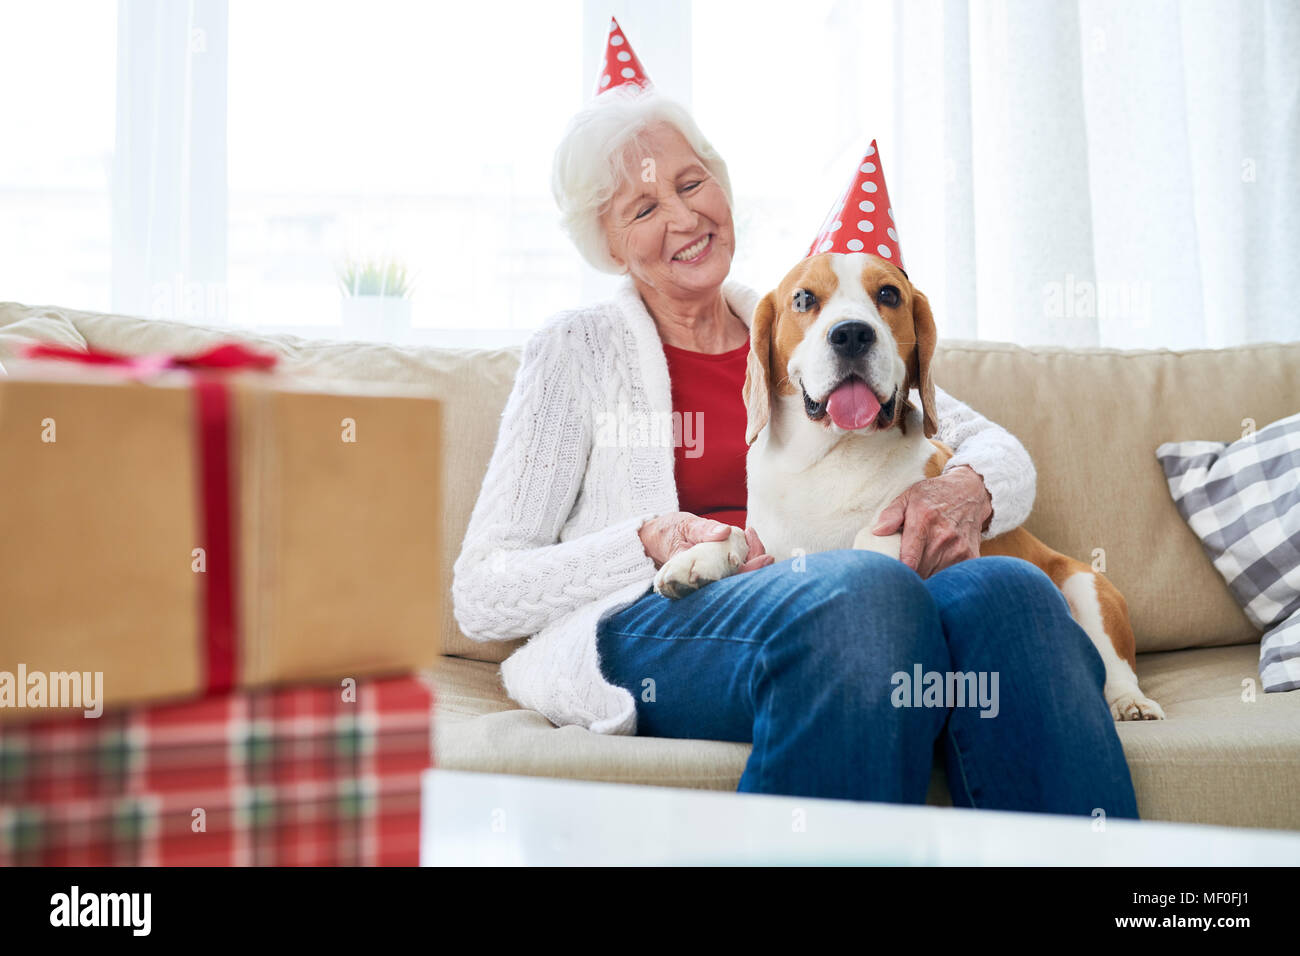 Joyful birthday party with dog - Stock Image